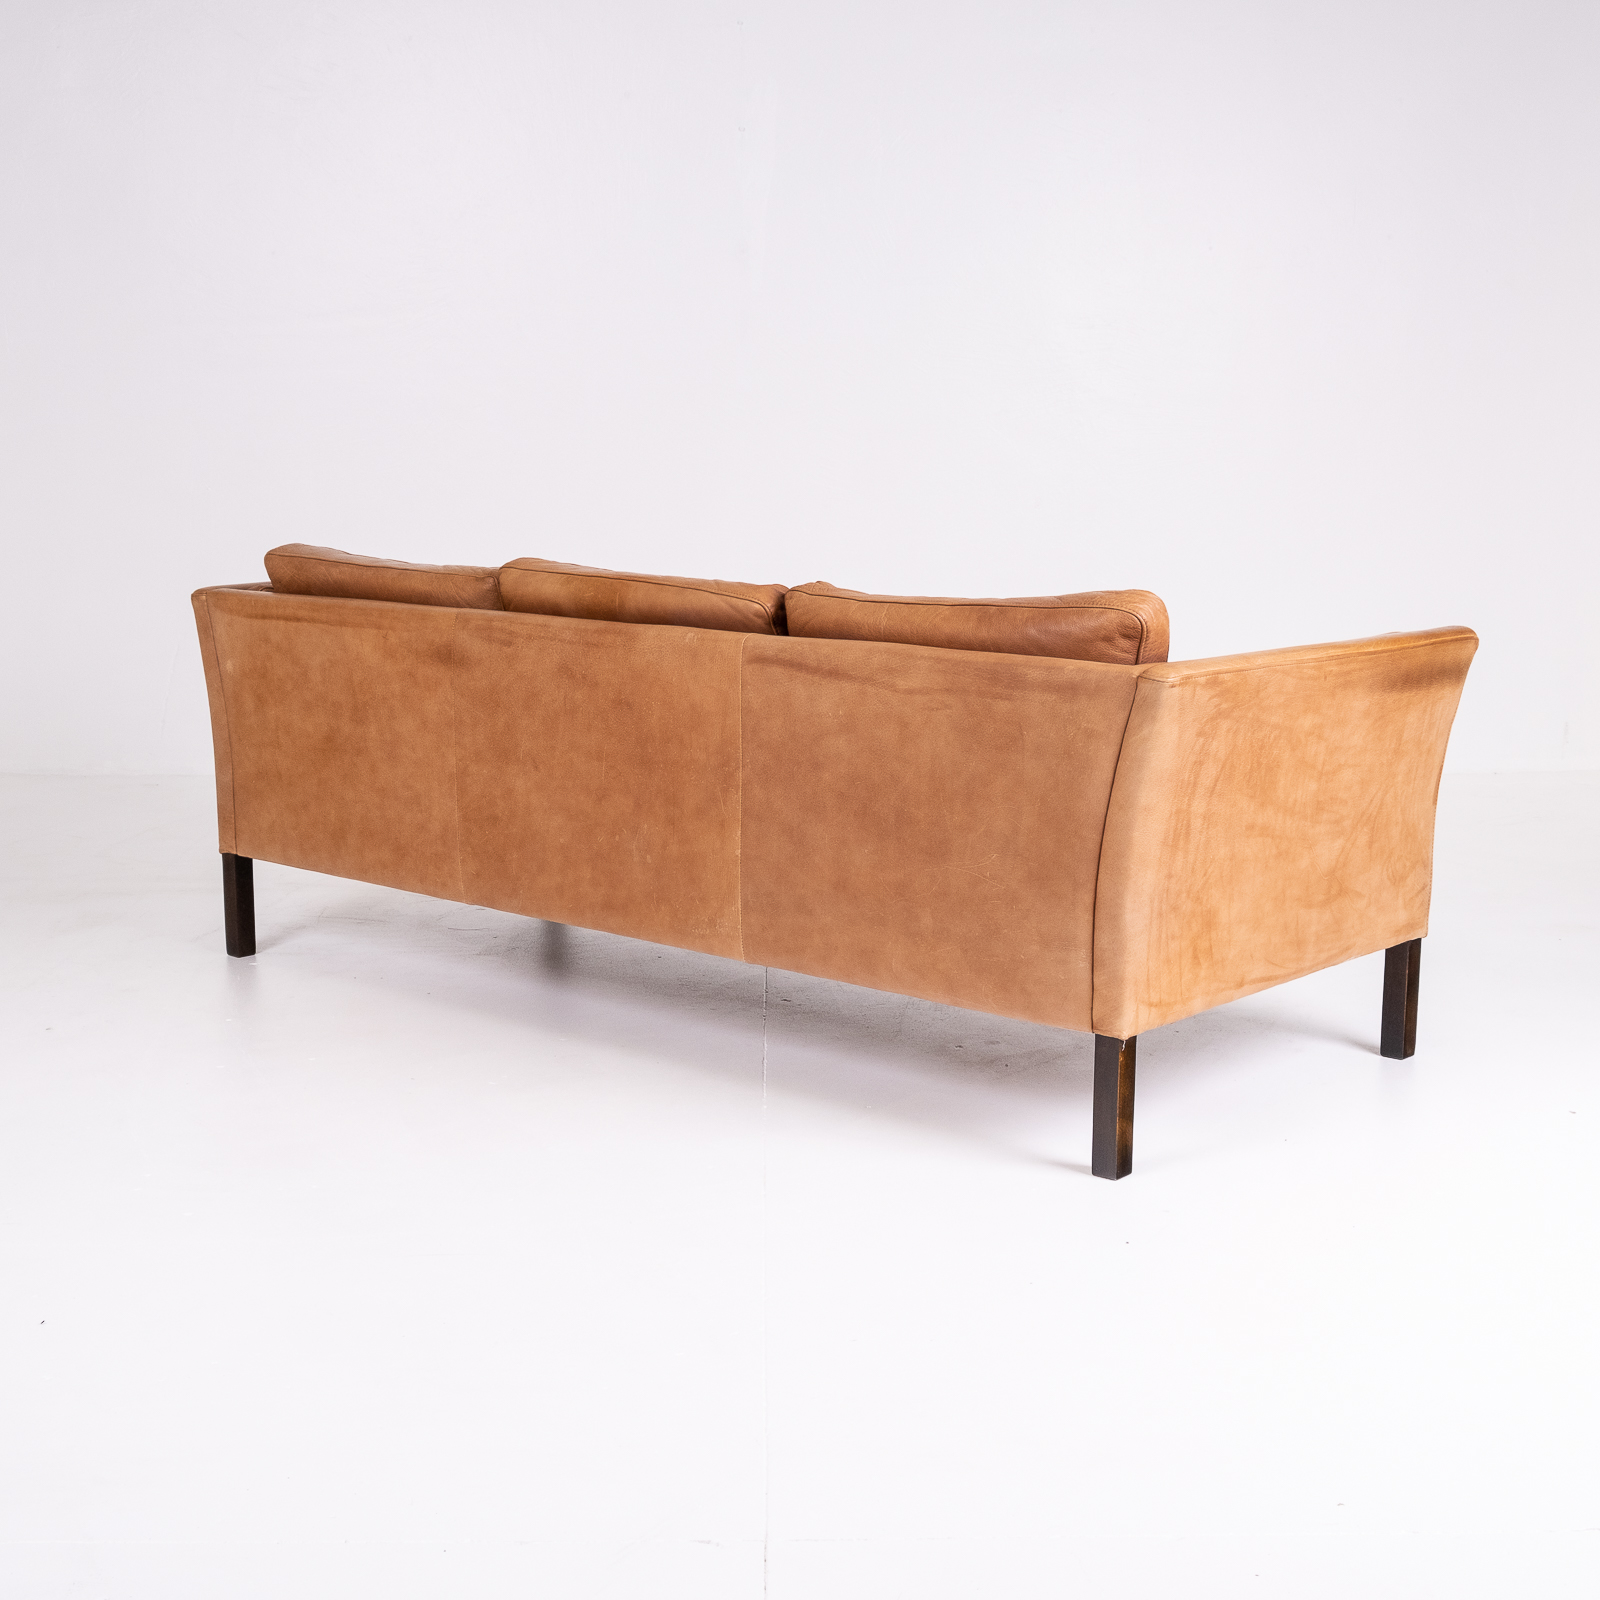 3 Seat Sofa By Stouby In Light Tan Leather, 1960s, Denmark 06